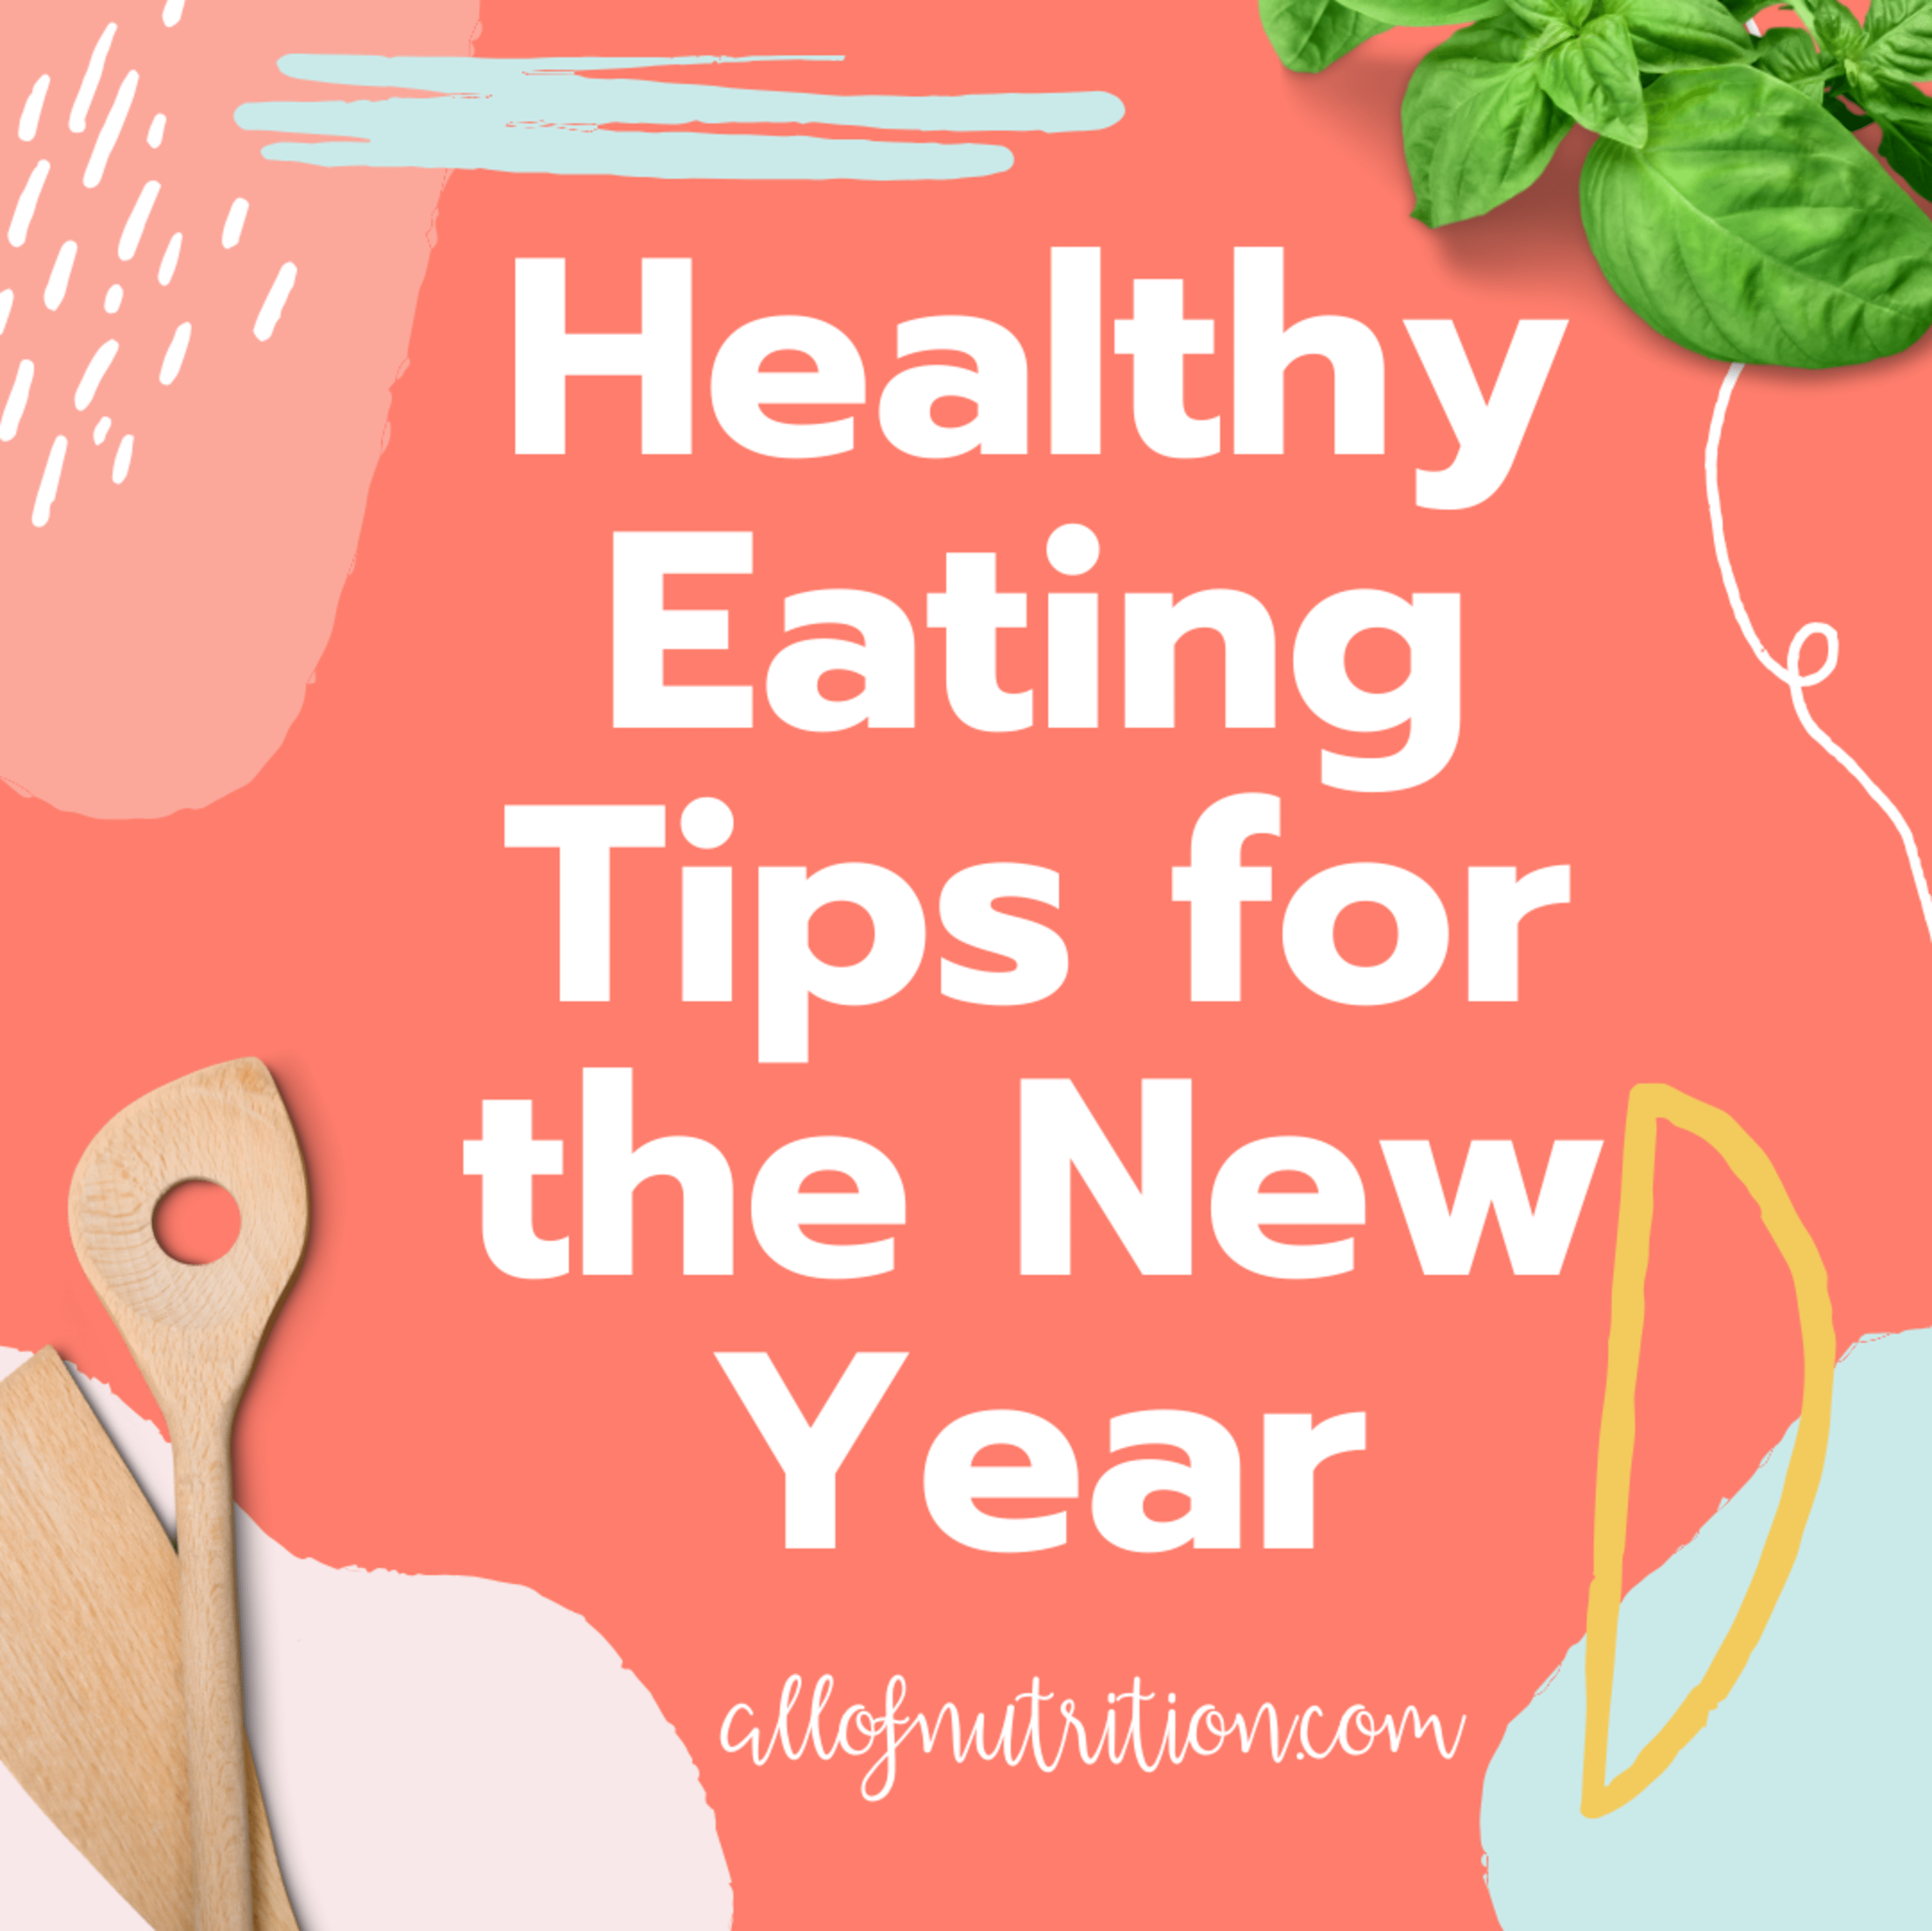 Healthy_Eating_for_the_New_Year_3040x3038